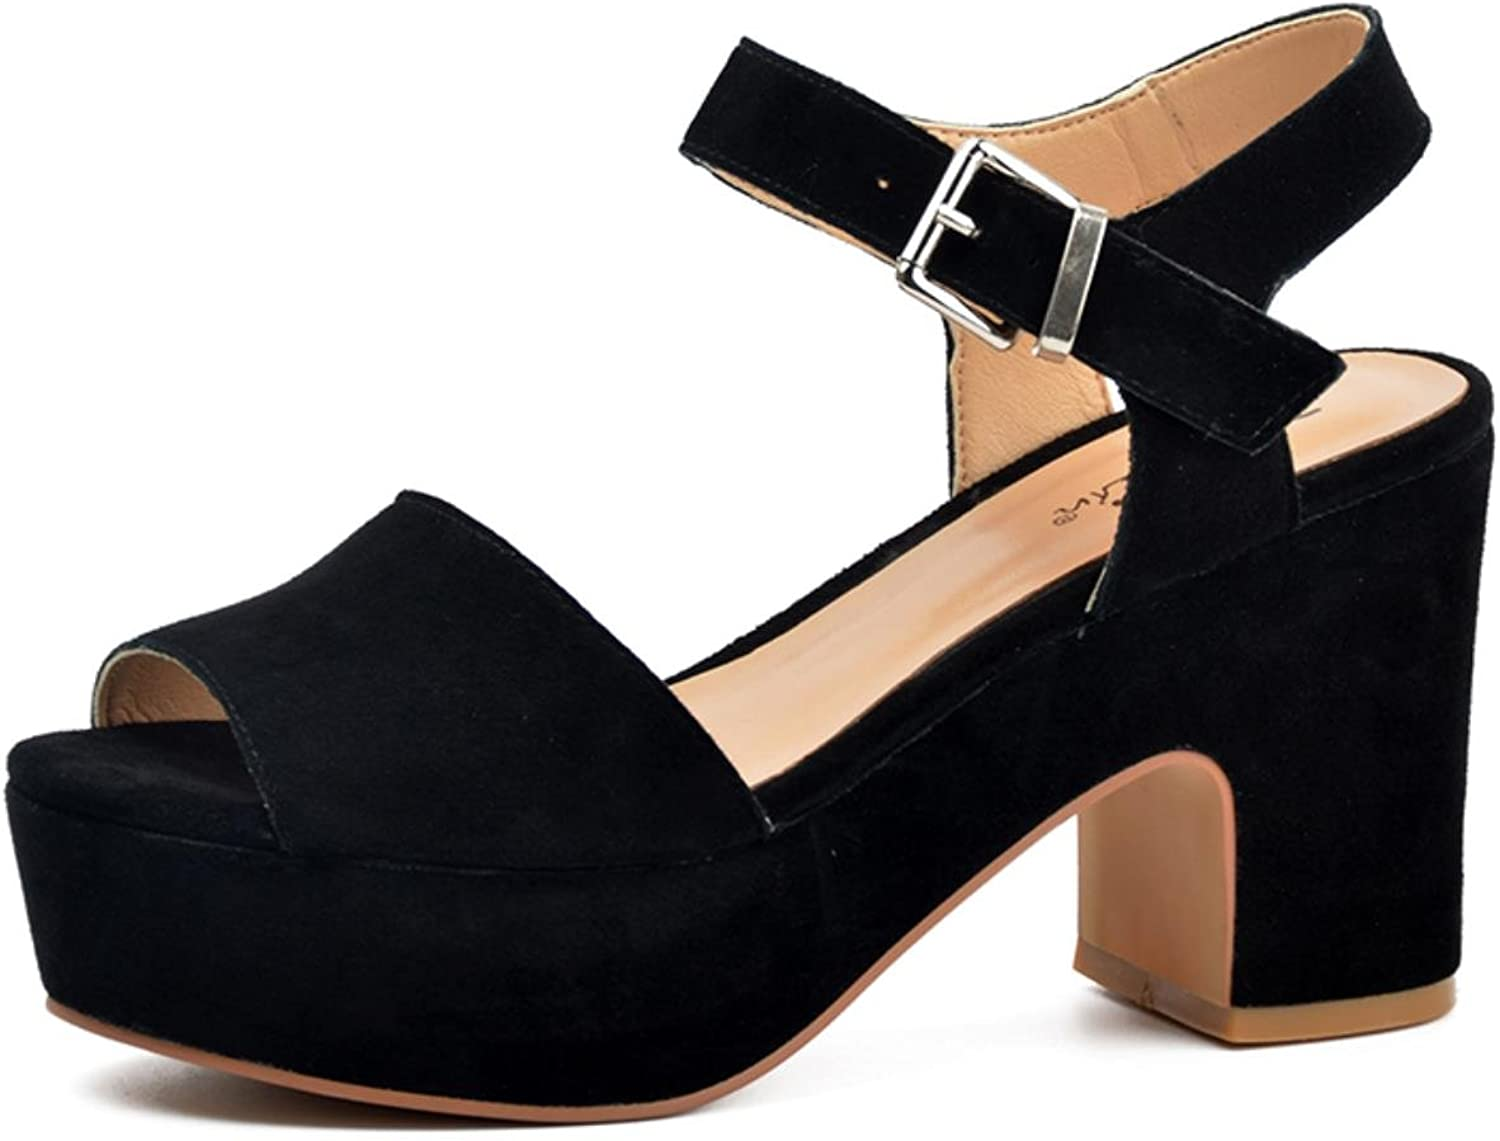 women-in New Fashion Summer open toe wedges Women sandals for high platform genuine leather shoes